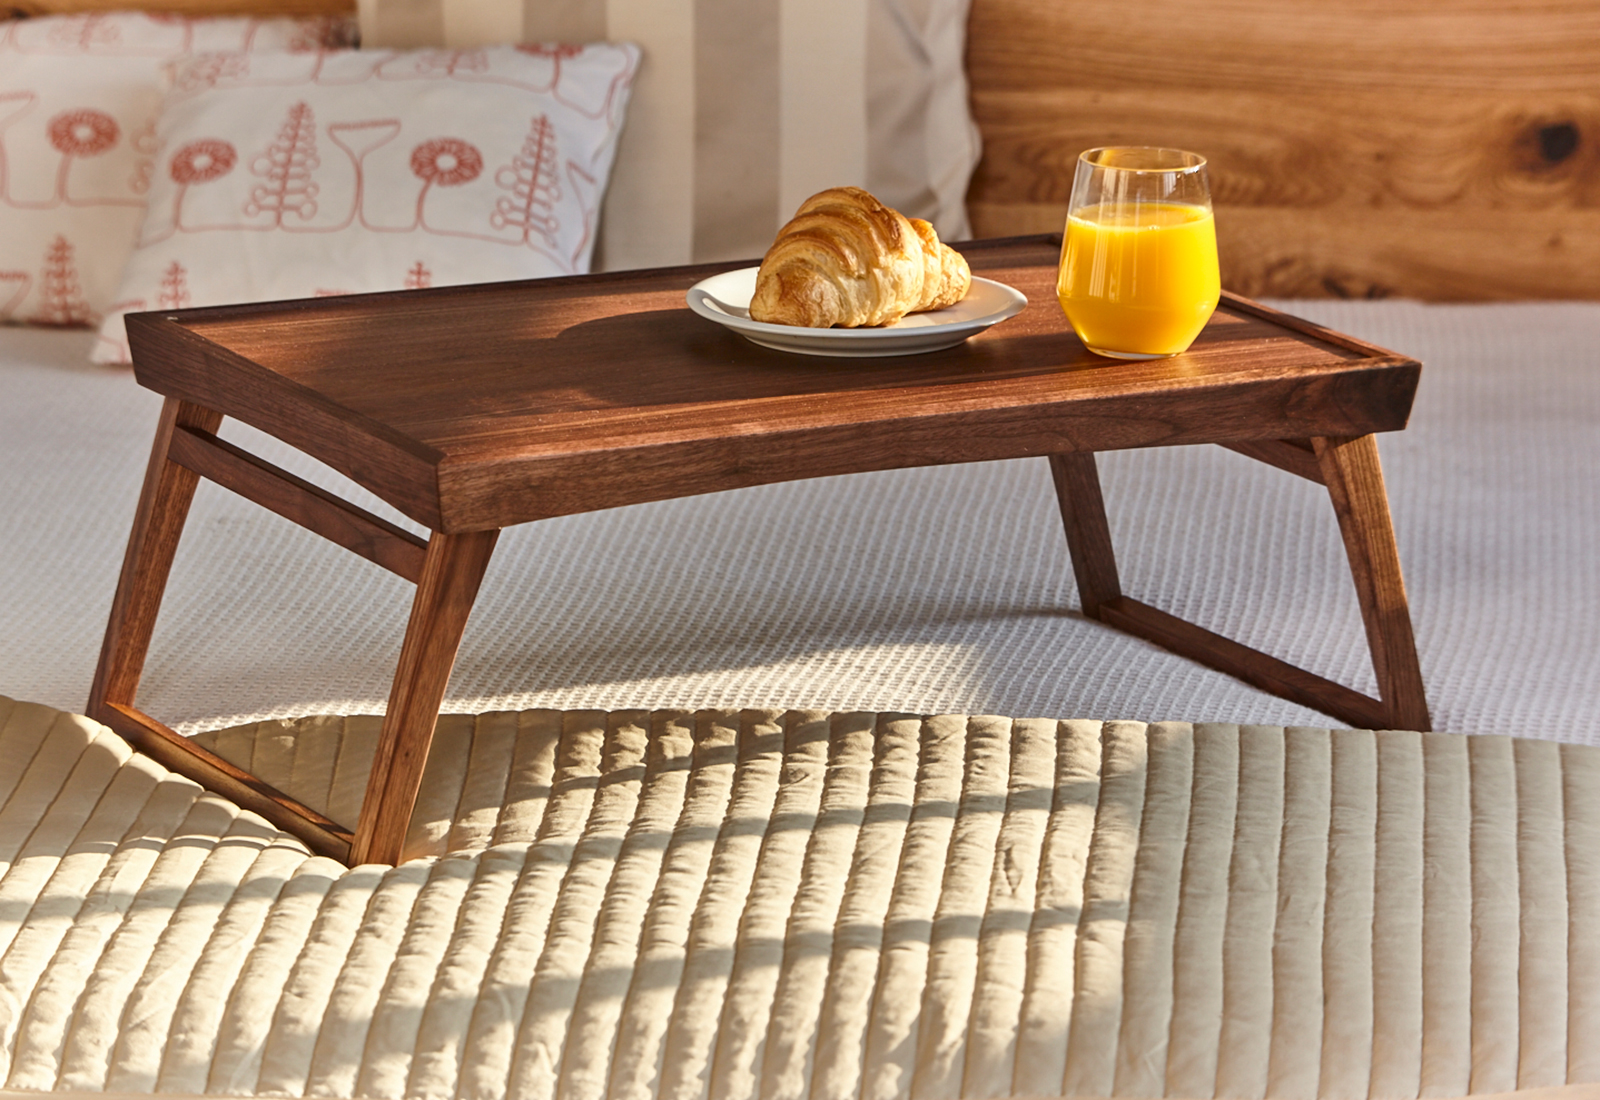 D 201 Sir 201 E Bed Tray Table Laptop Stand Bed Tray